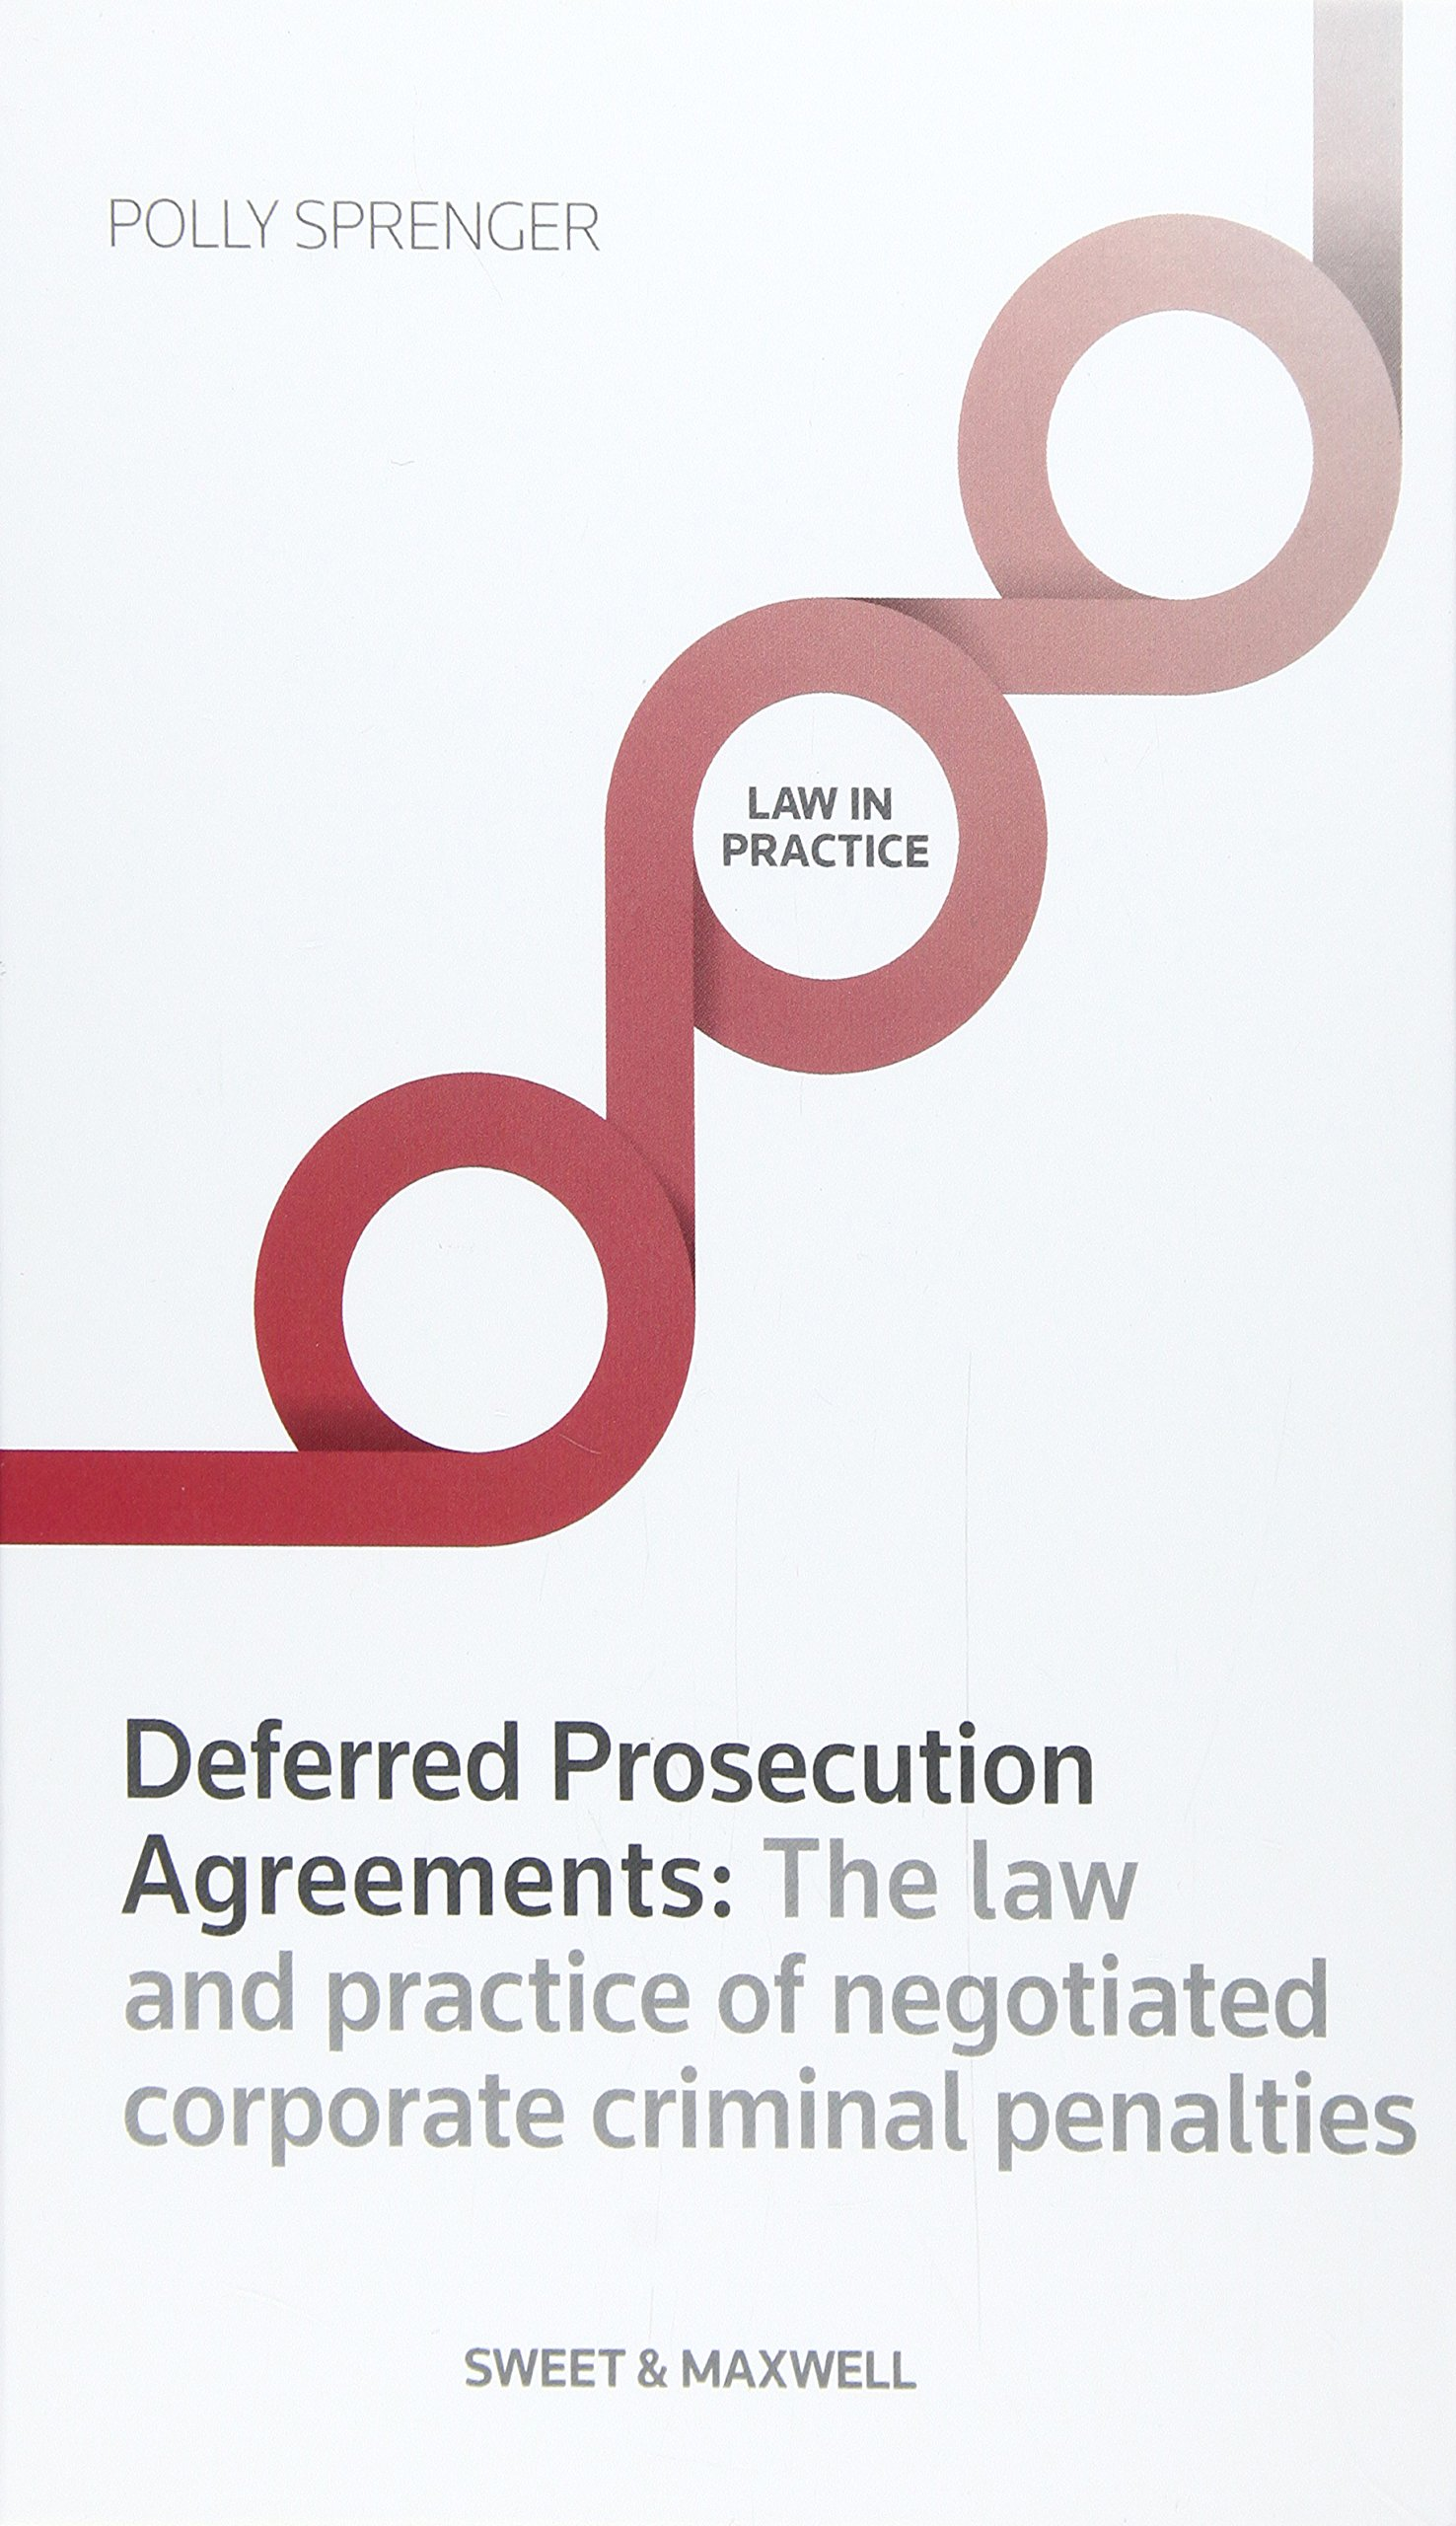 Deferred Prosecution Agreements Law And Practice Negotiate